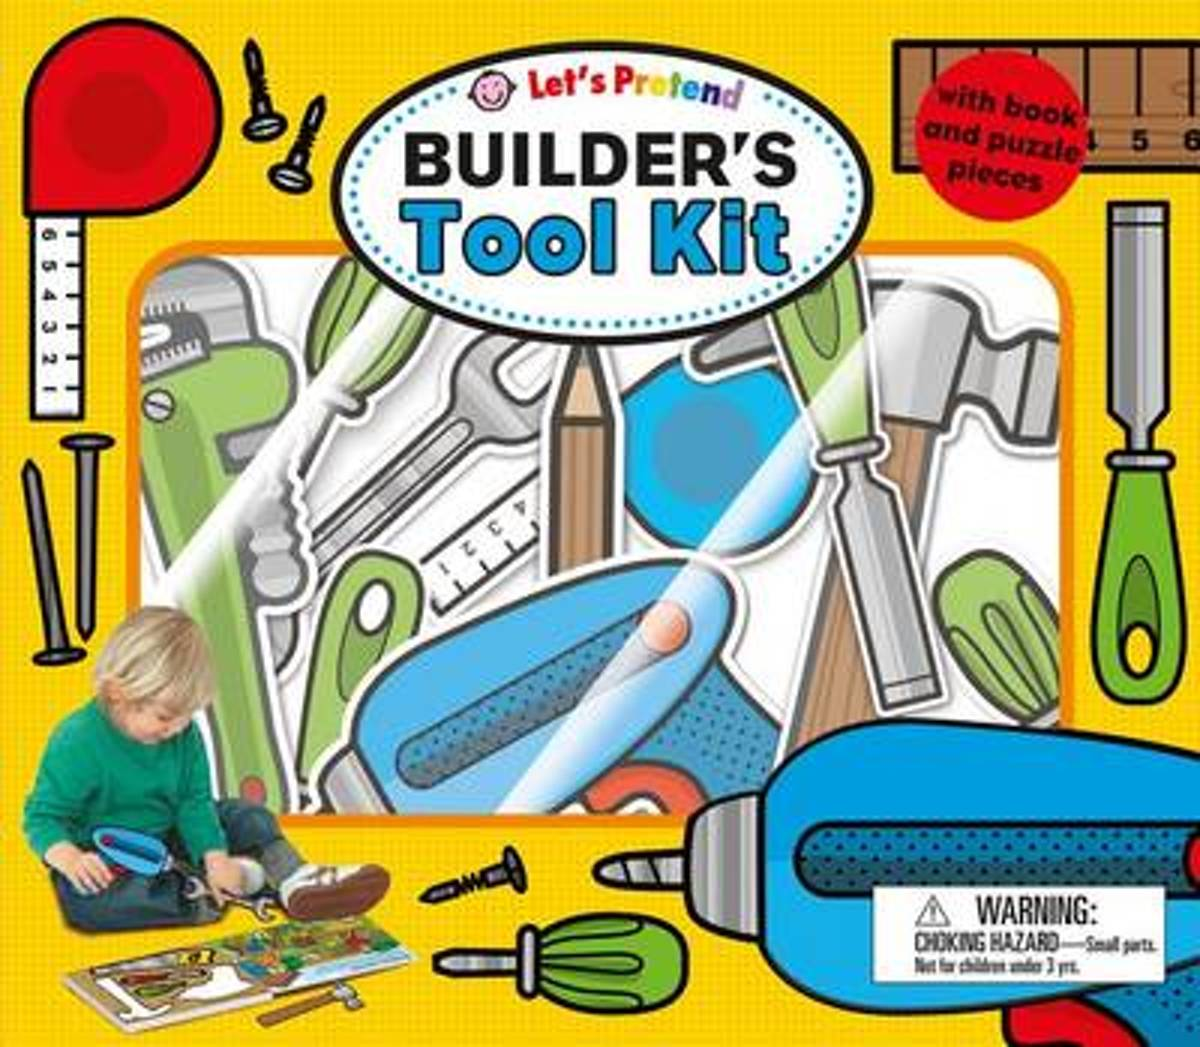 Let's Pretend Builders Tool Kit